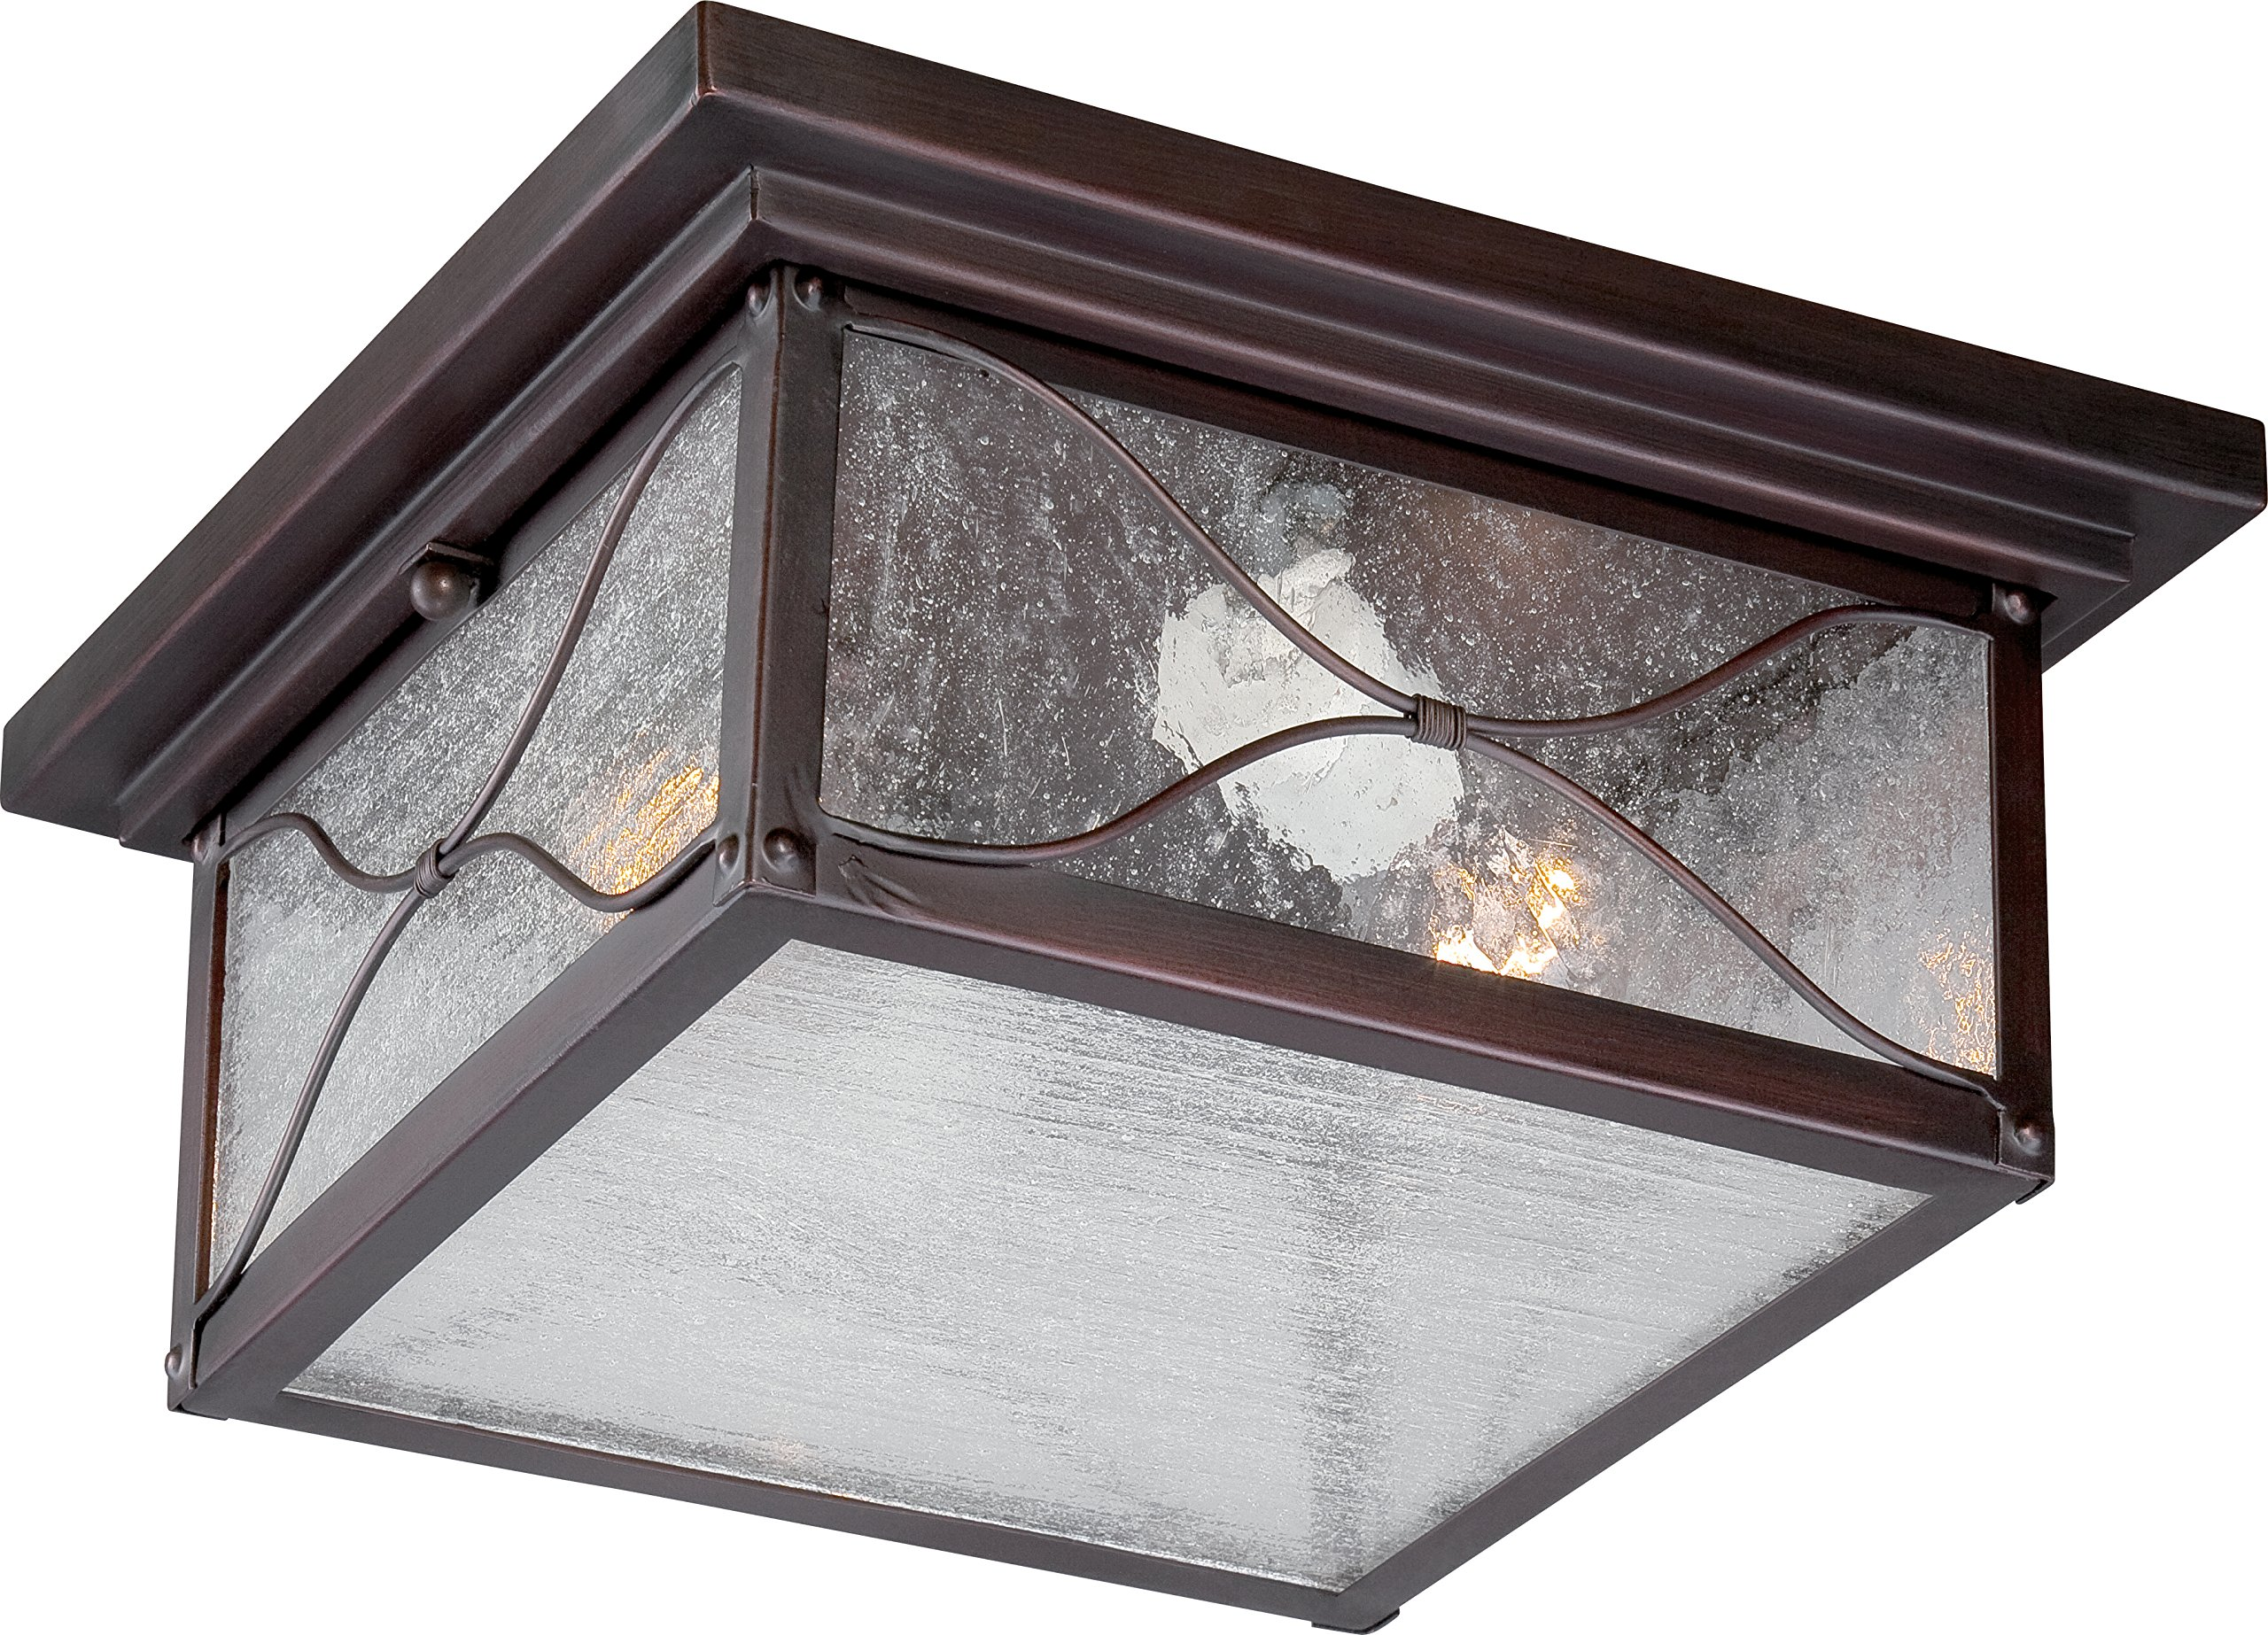 Nuvo Lighting 60/5616 Vega Flush One Light 60-watt Max Outdoor Close to Ceiling Porch and Patio Lighting with Clear Seeded Glass, Classic Bronze